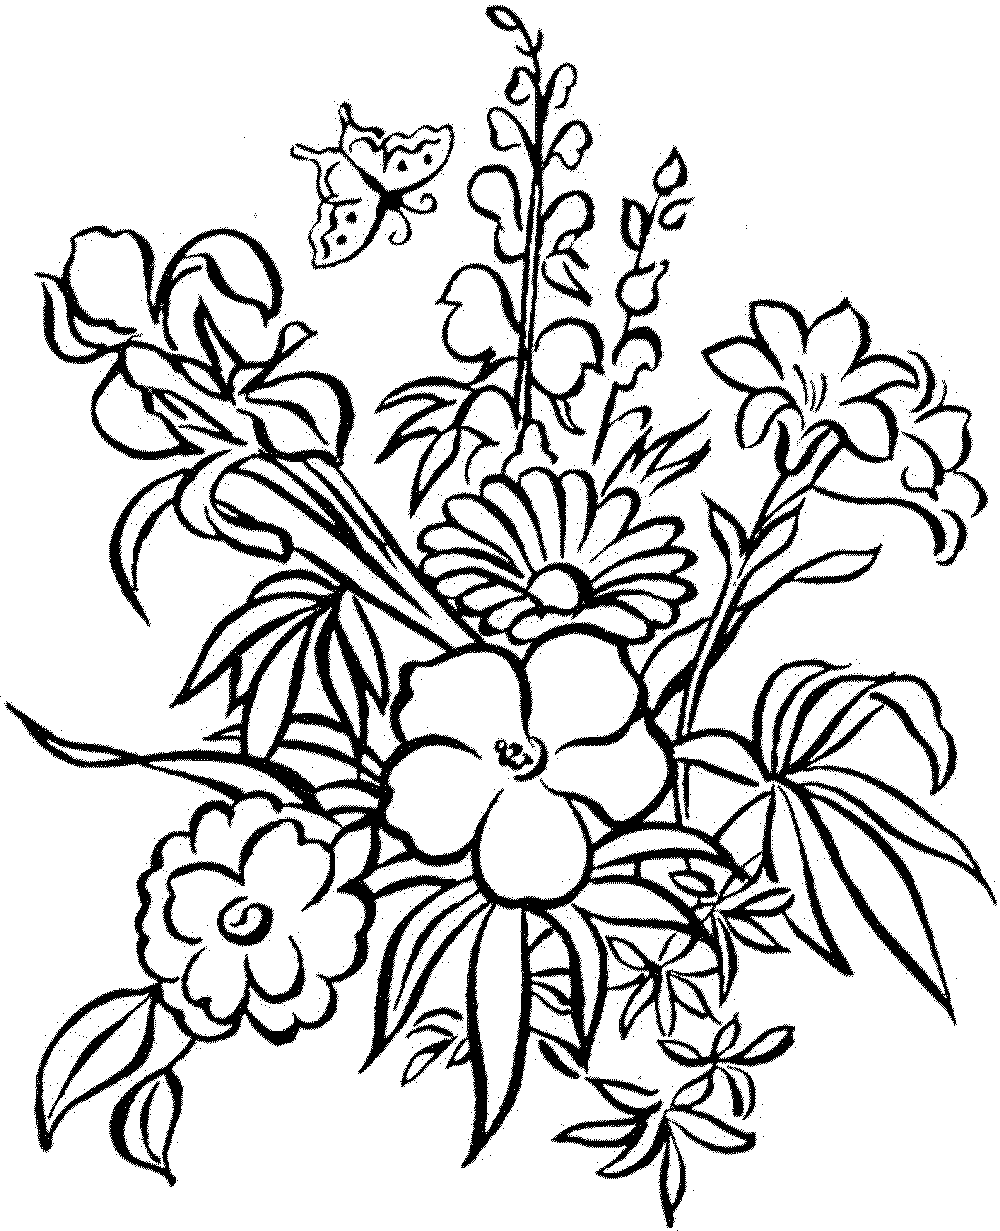 flower coloring sheet print download some common variations of the flower sheet coloring flower 1 1